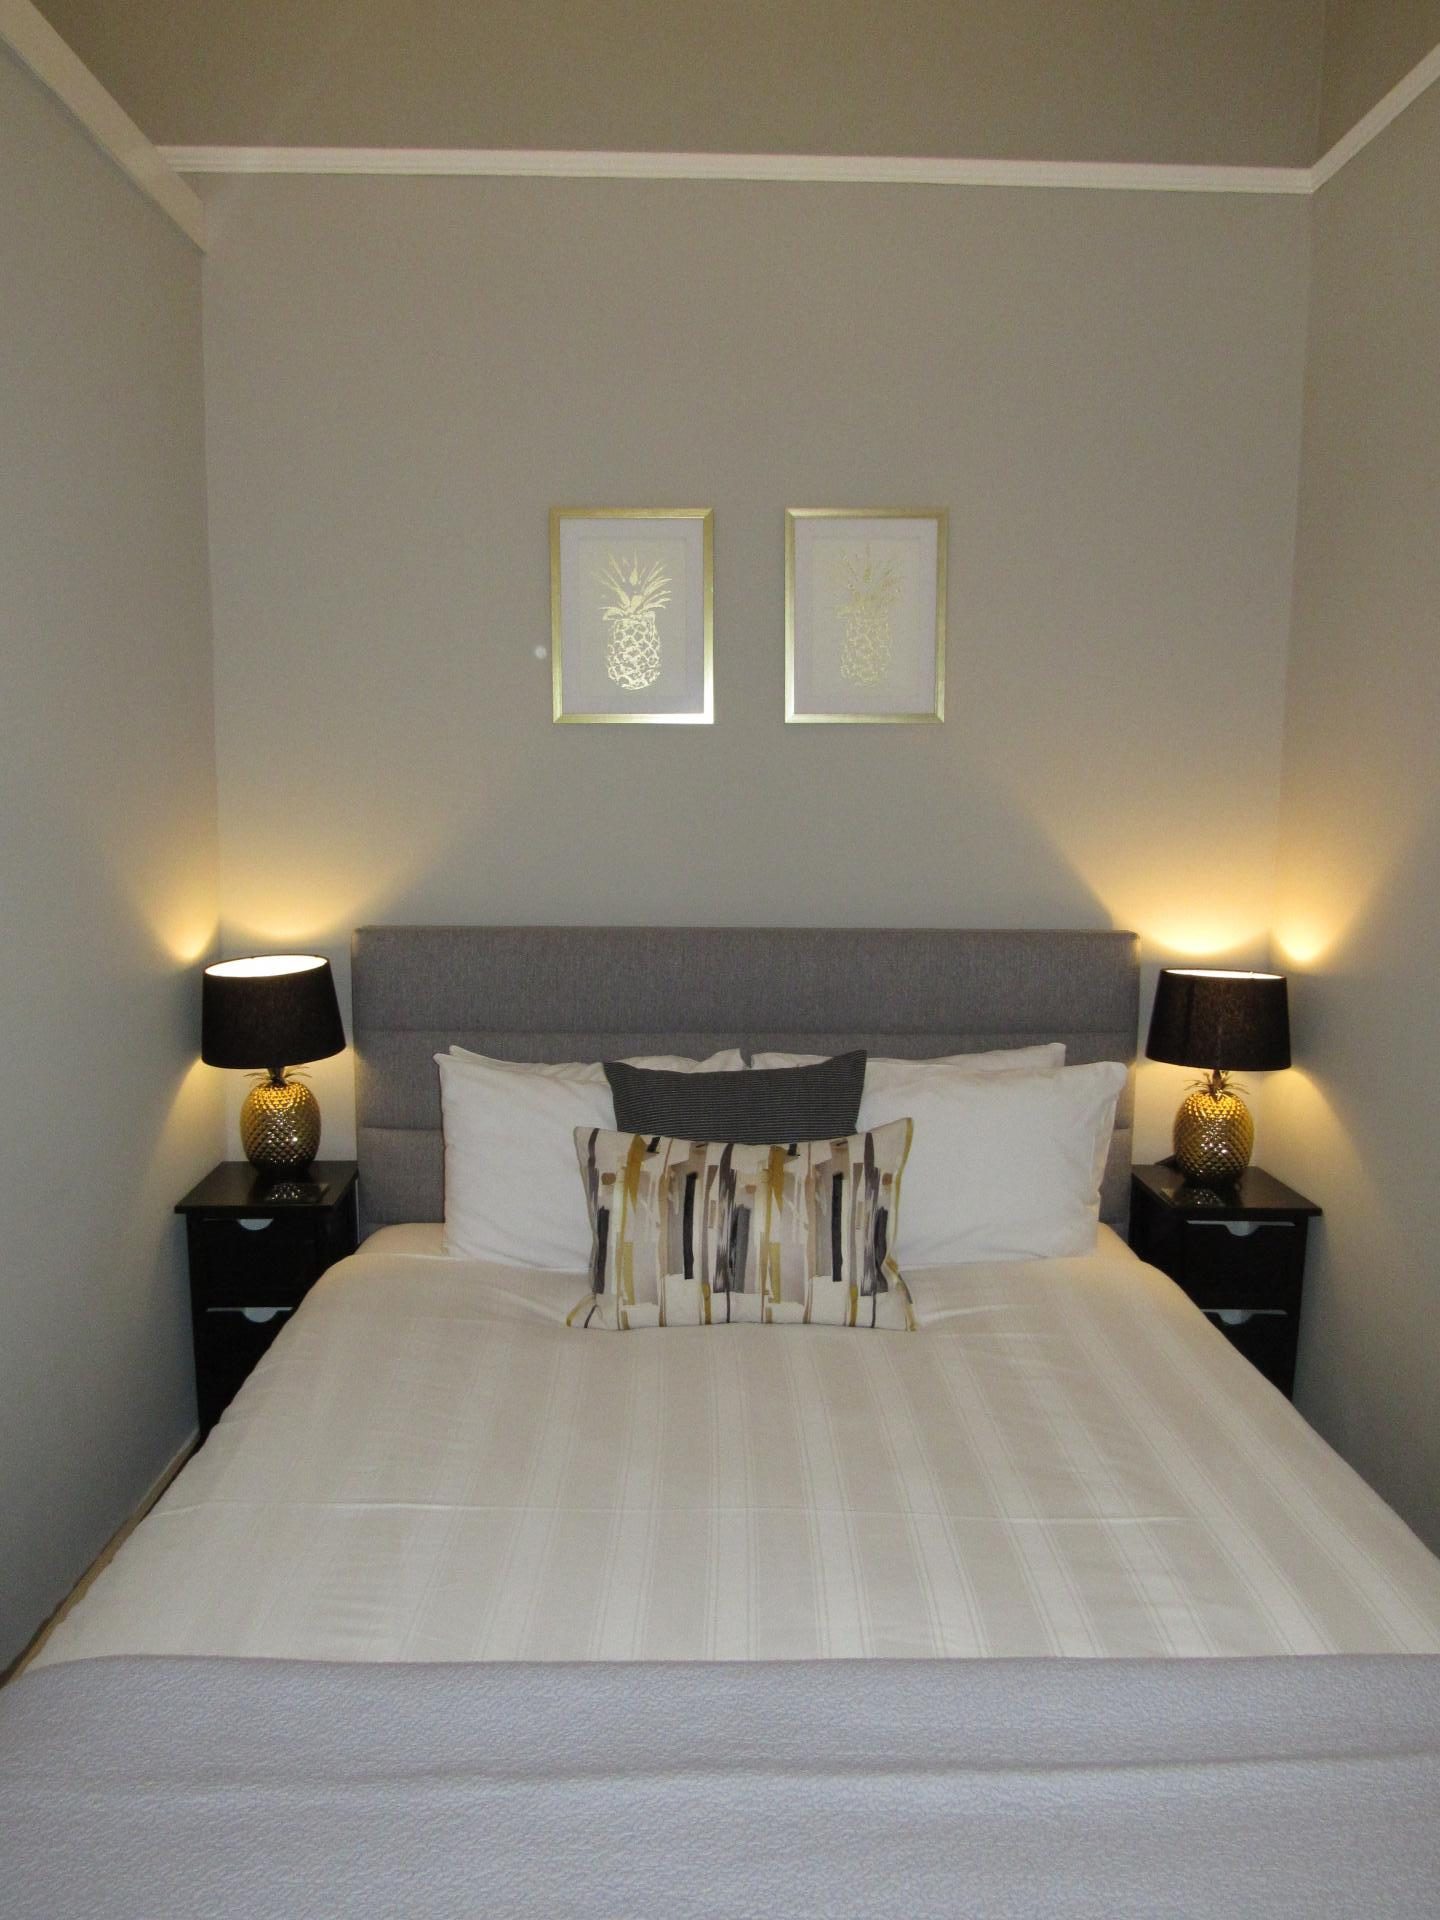 4.En-suite Double Room with King Bed (Including breakfast).